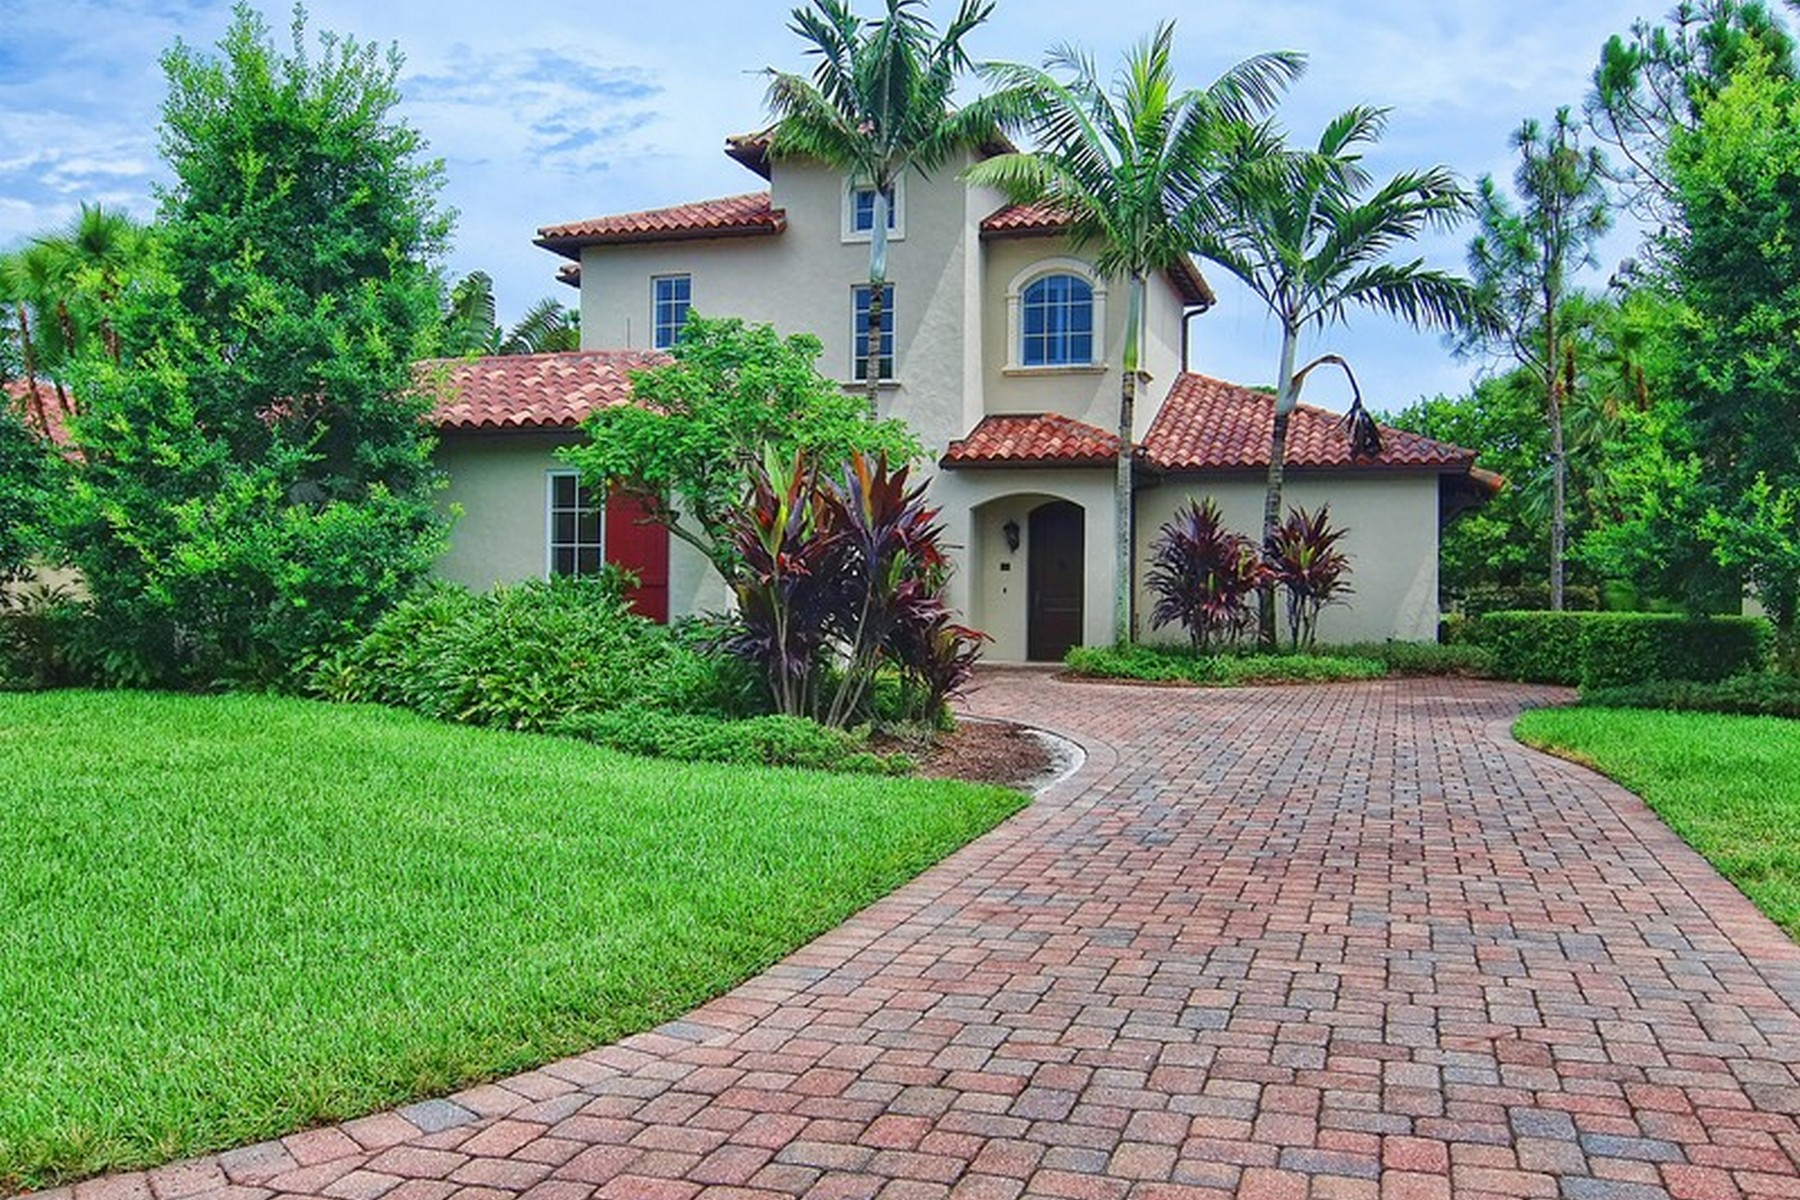 Multipropiedad por un Venta en 648 White Pelican Way (Int. 5) 648 White Pelican Way (Interest 5) Jupiter, Florida 33477 Estados Unidos